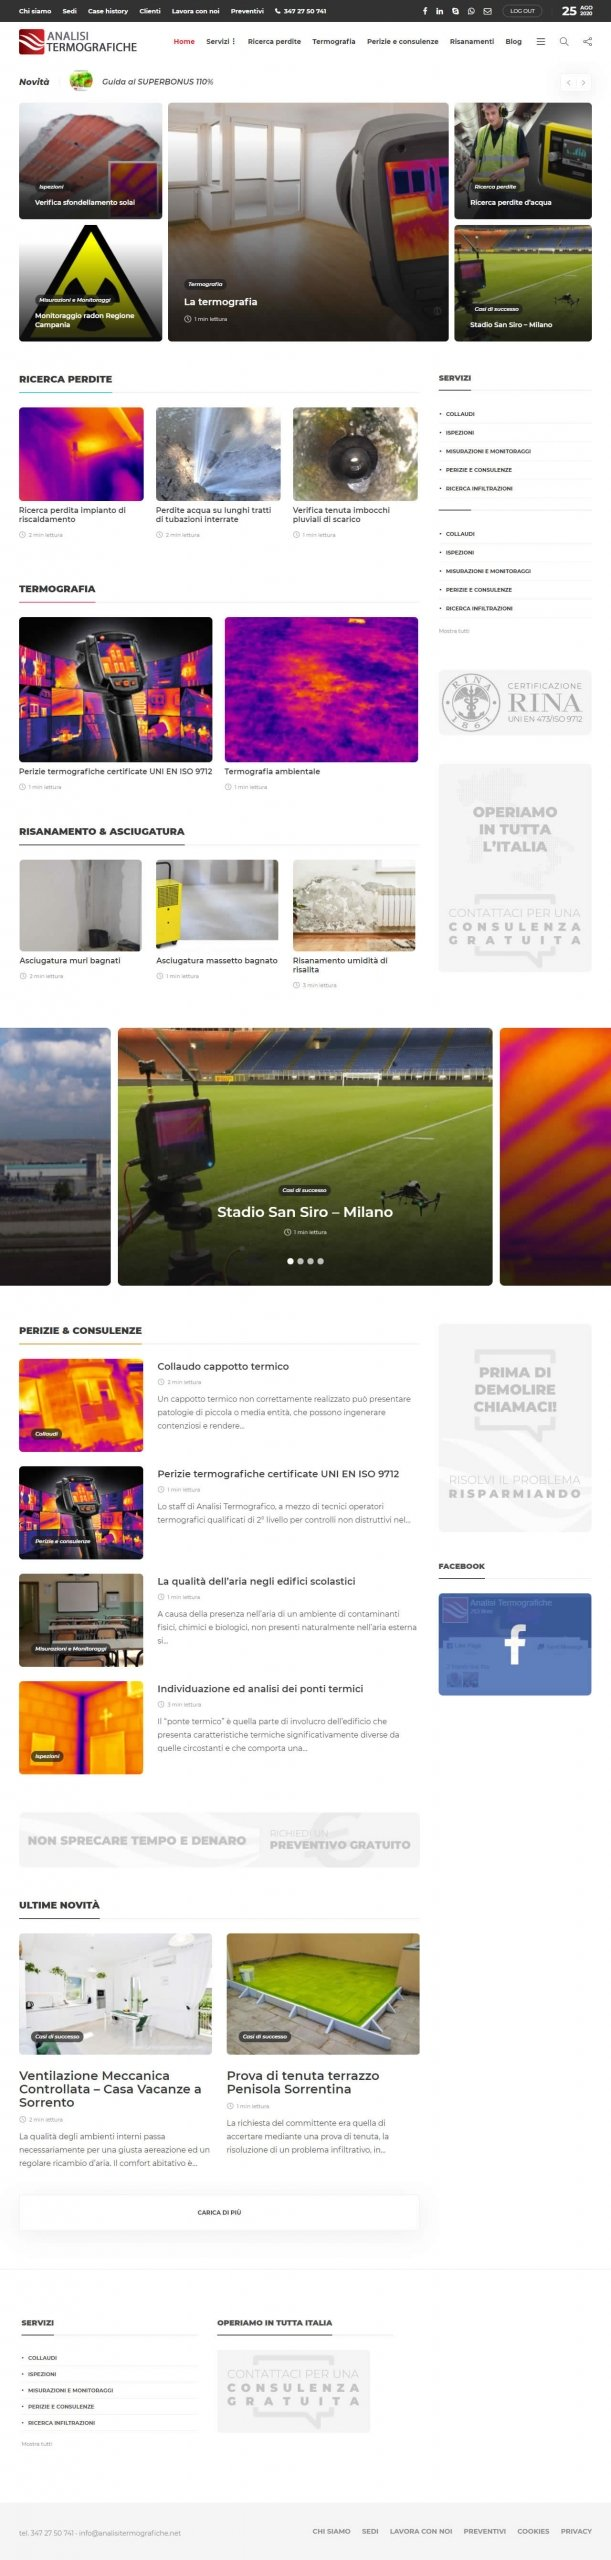 Restyling sito analisi termografiche - home page